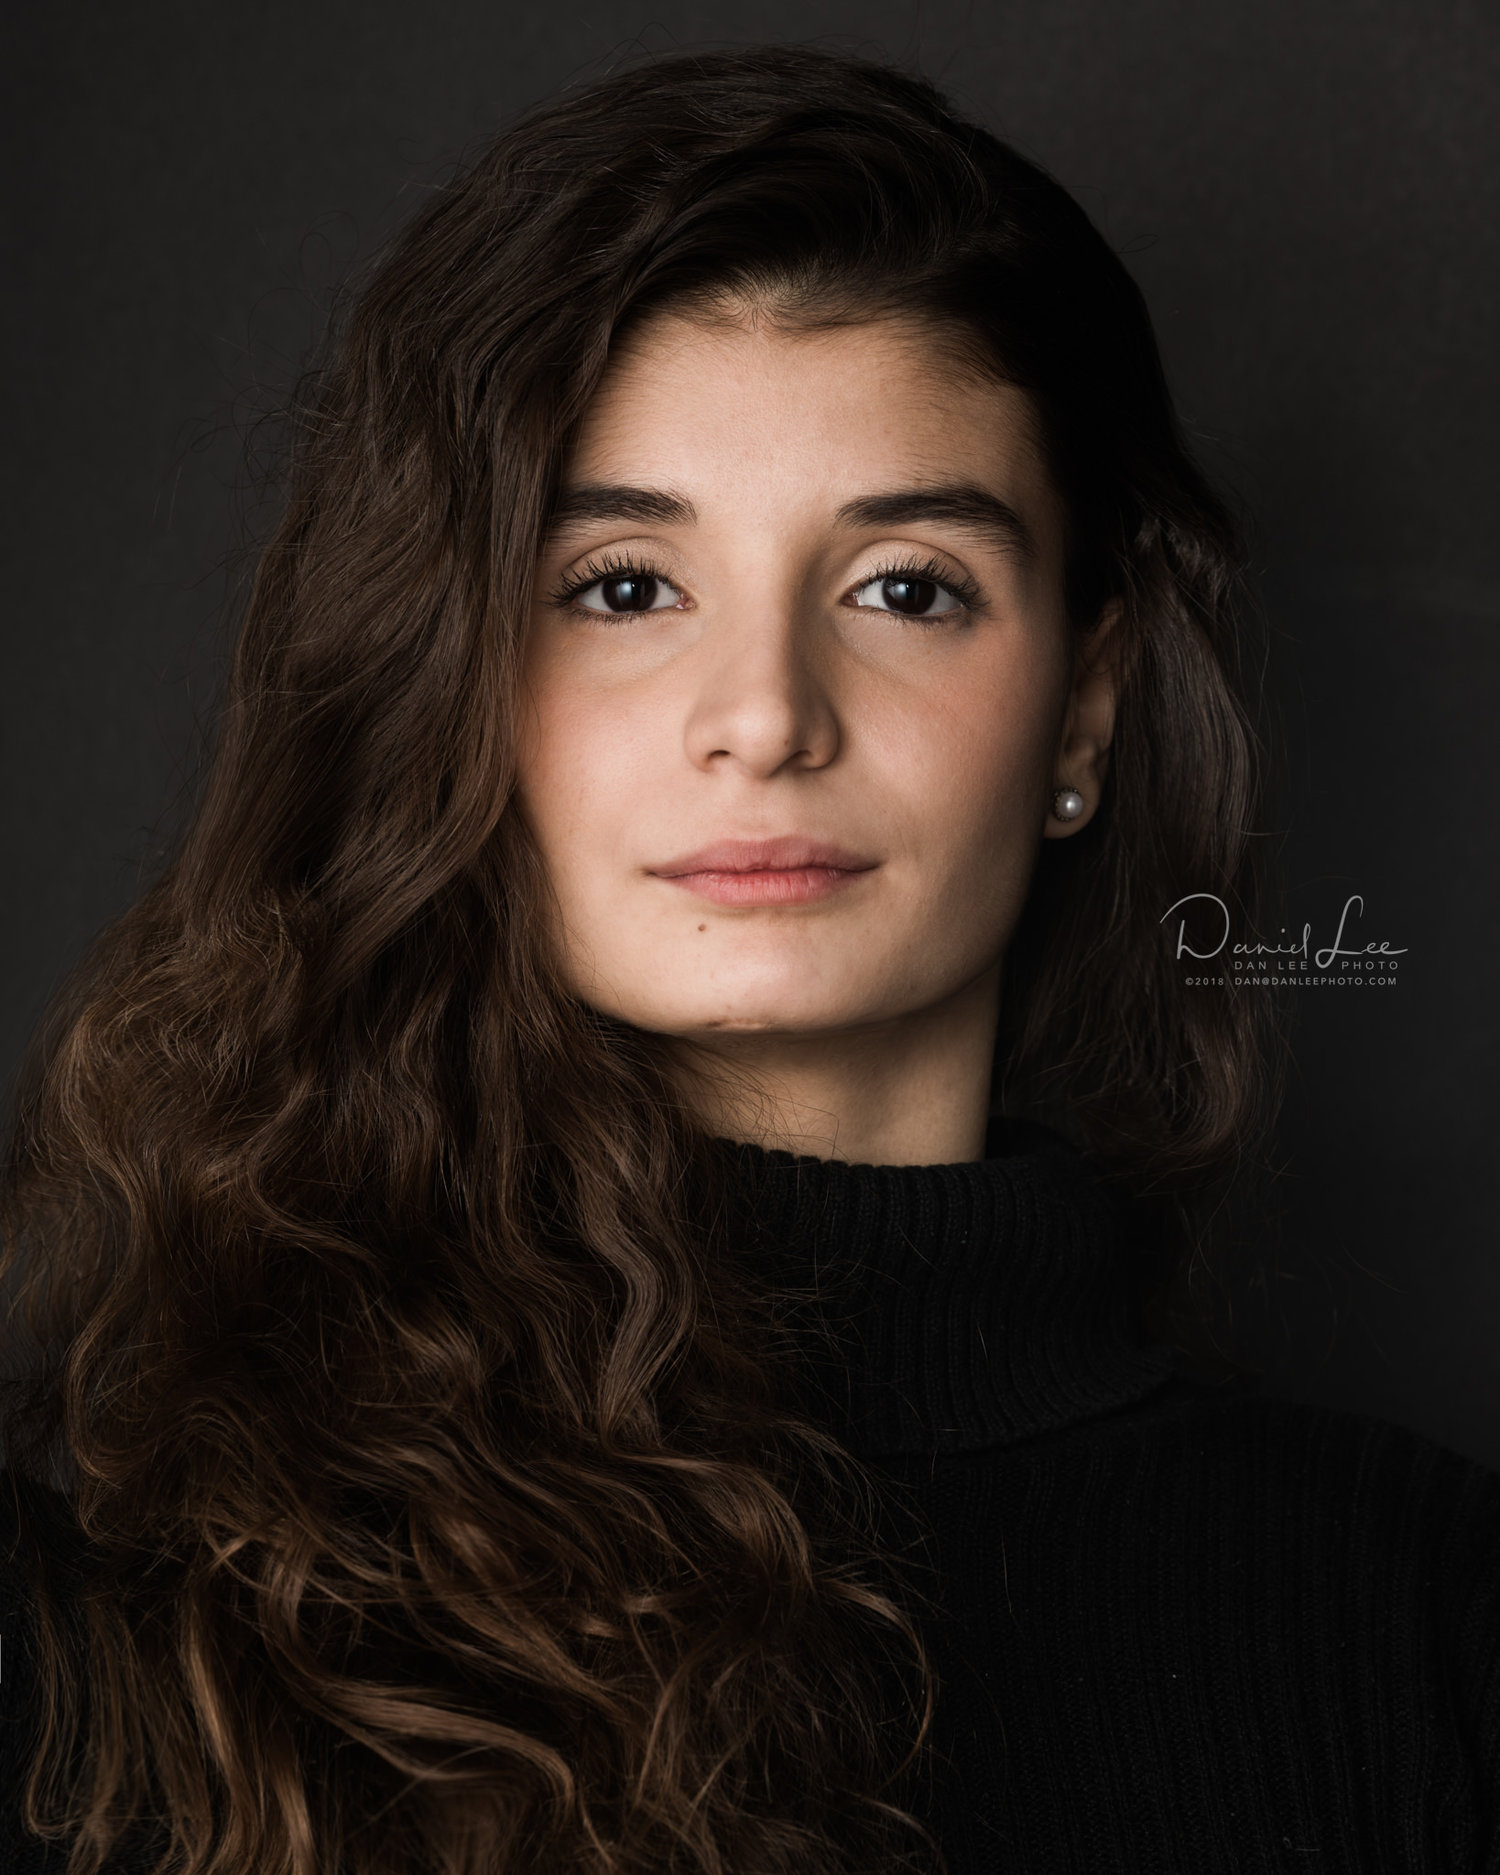 Manoela Leopoldino, Dancer, Joffrey Ballet School. Headshot by Daniel Lee.